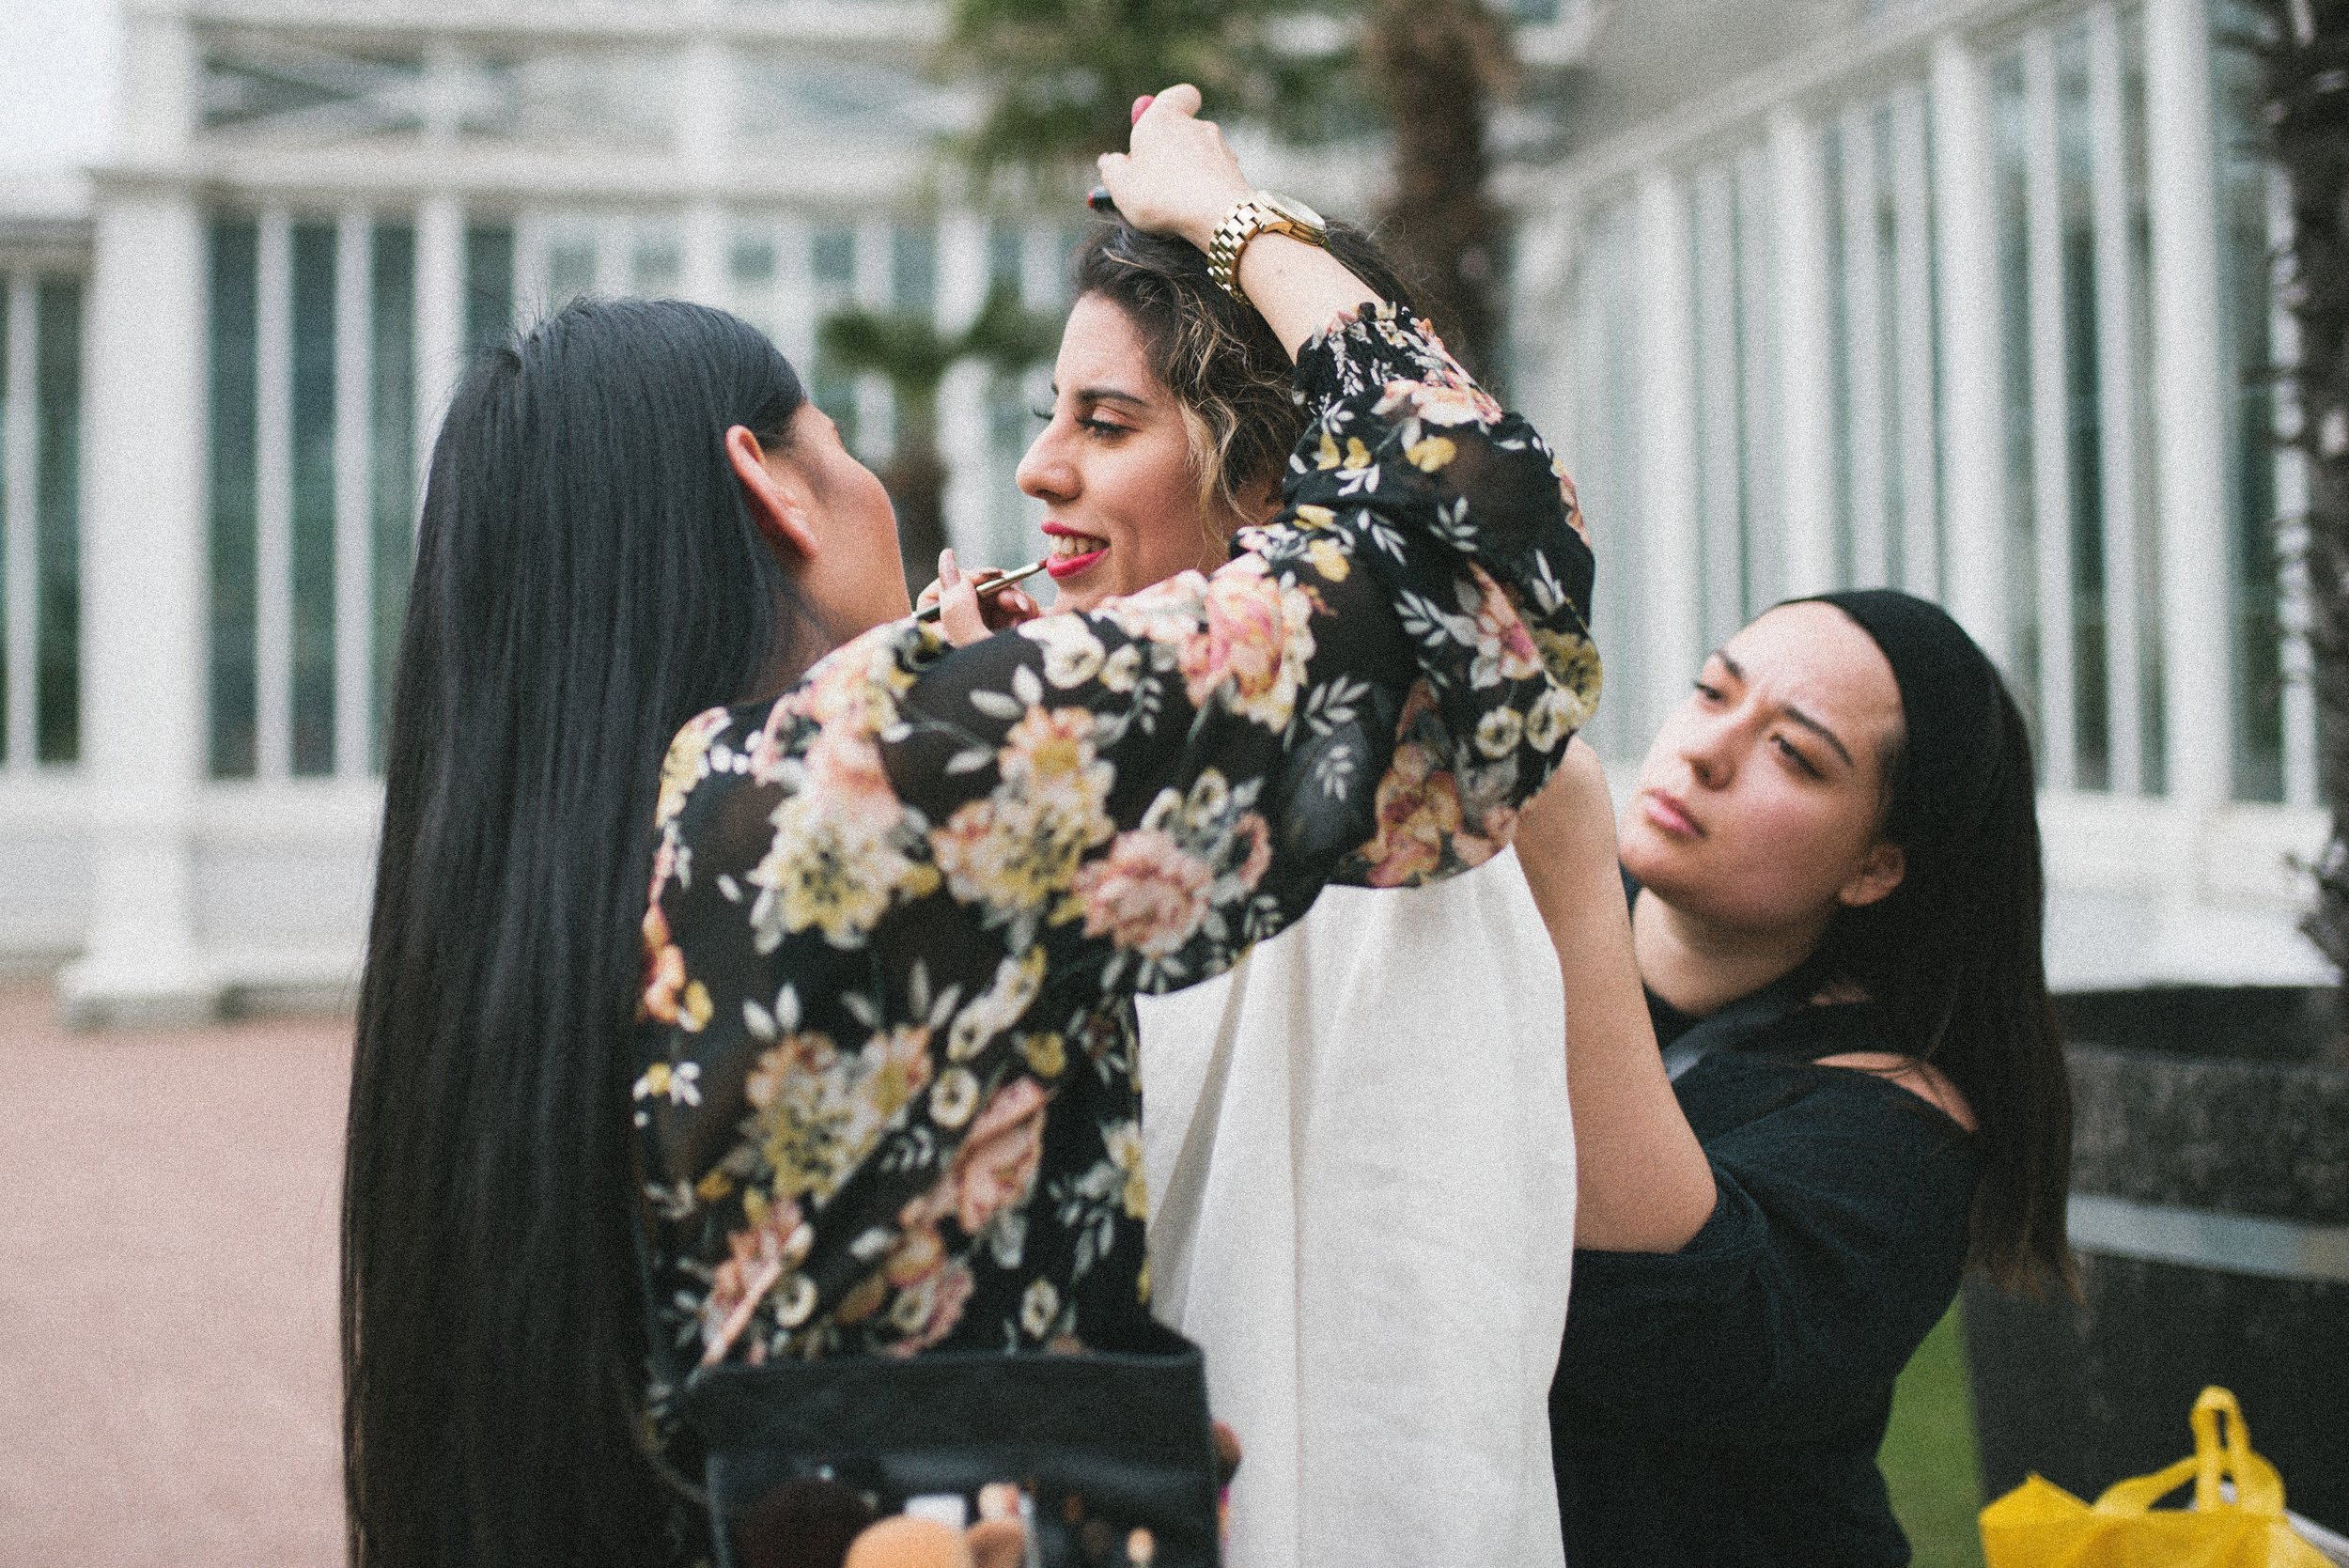 Photoshoot by Angelica Hvass at the Gothenburg Botanical Garden in Sweden. Left to right: Pernilla Tiensuwon, Lisbeth Estrada Perez and Nathali Elfström.